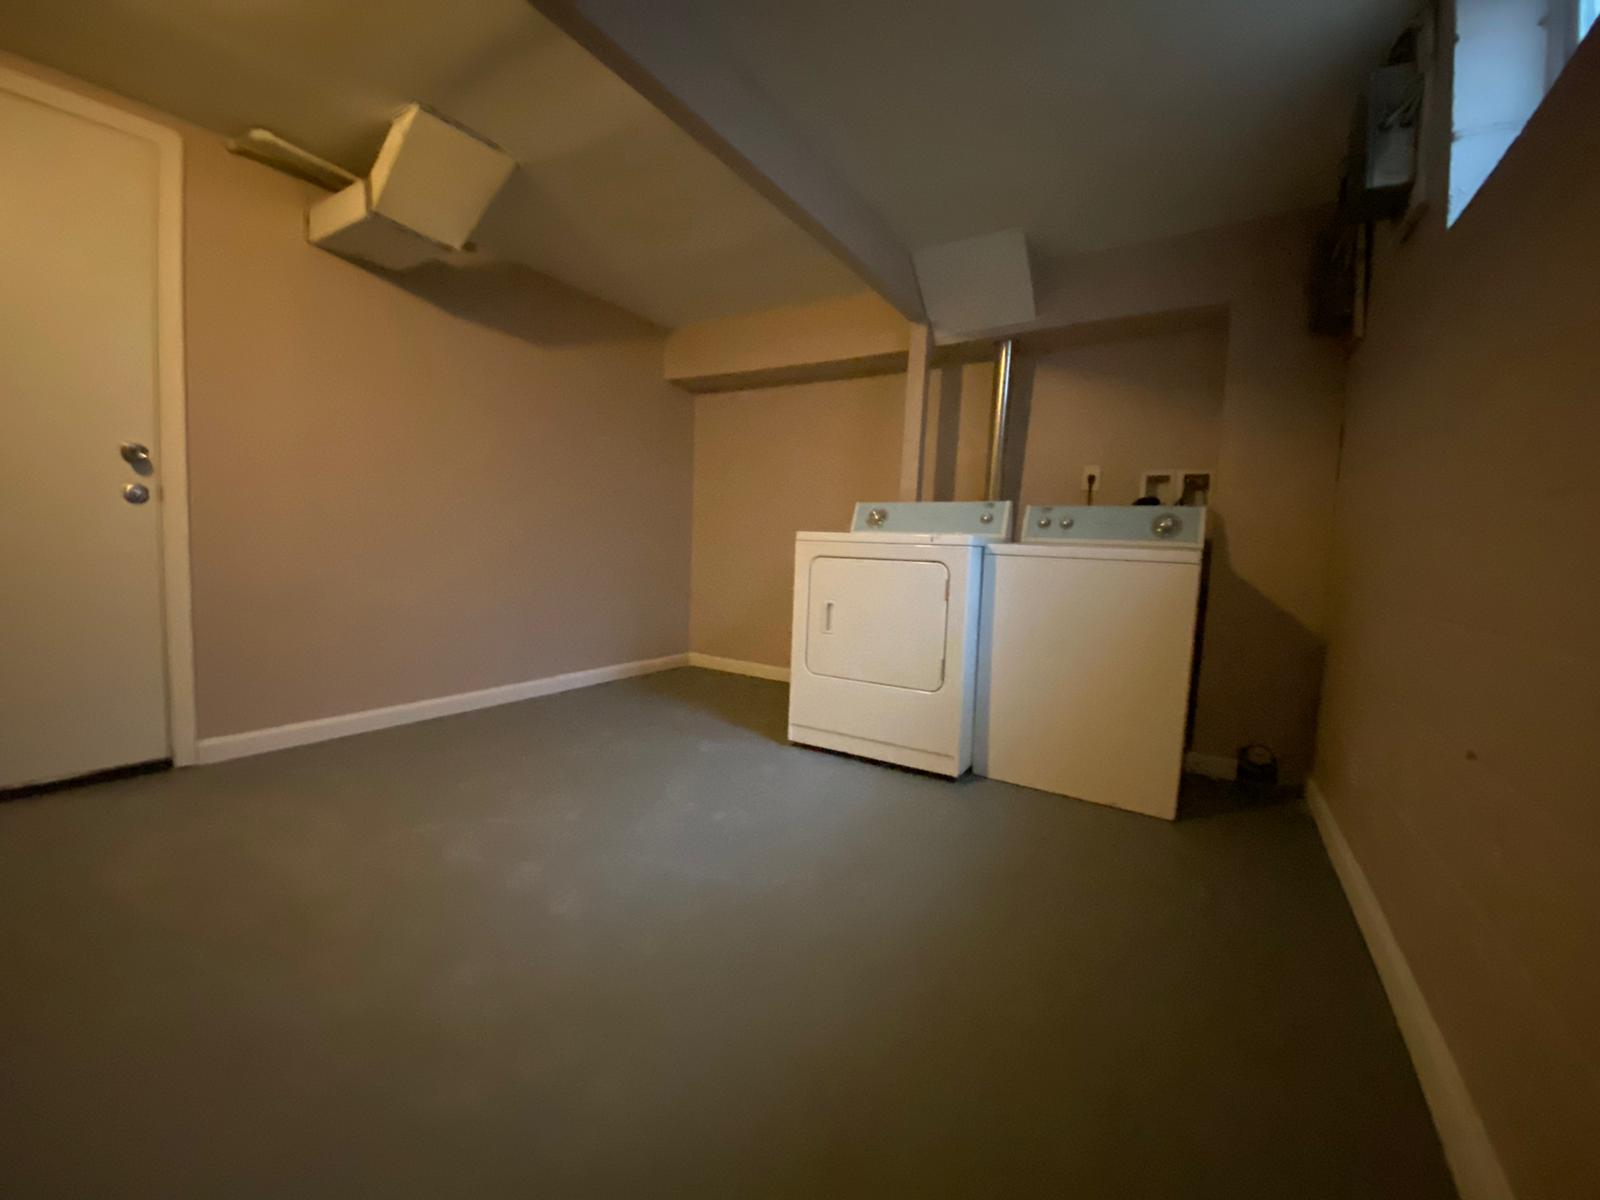 Washer and Dryer at Rogers Townhomes